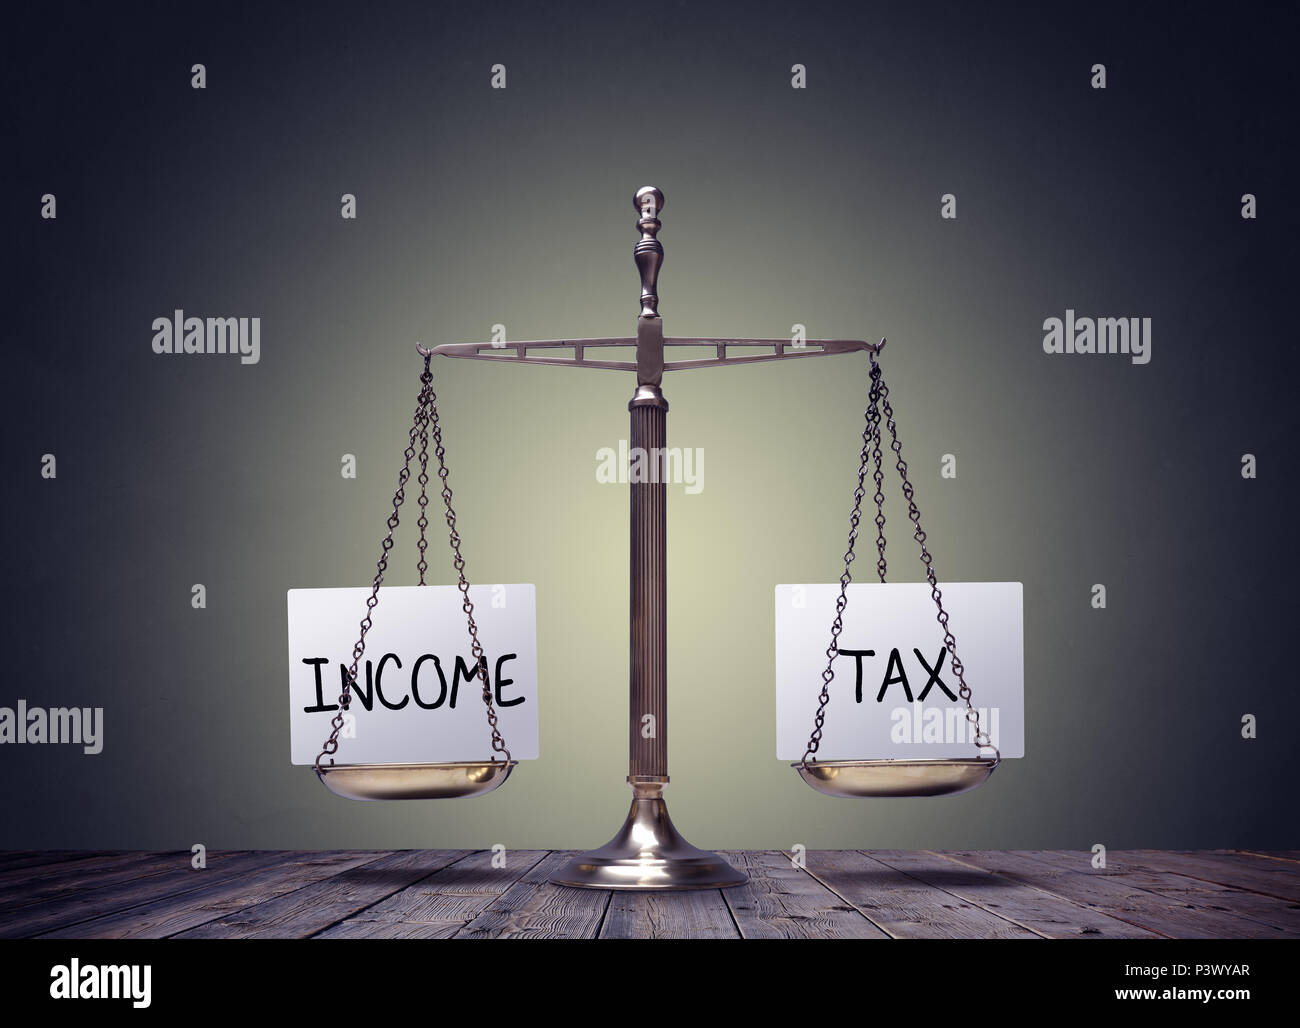 Income tax balance finance books scales concept - Stock Image